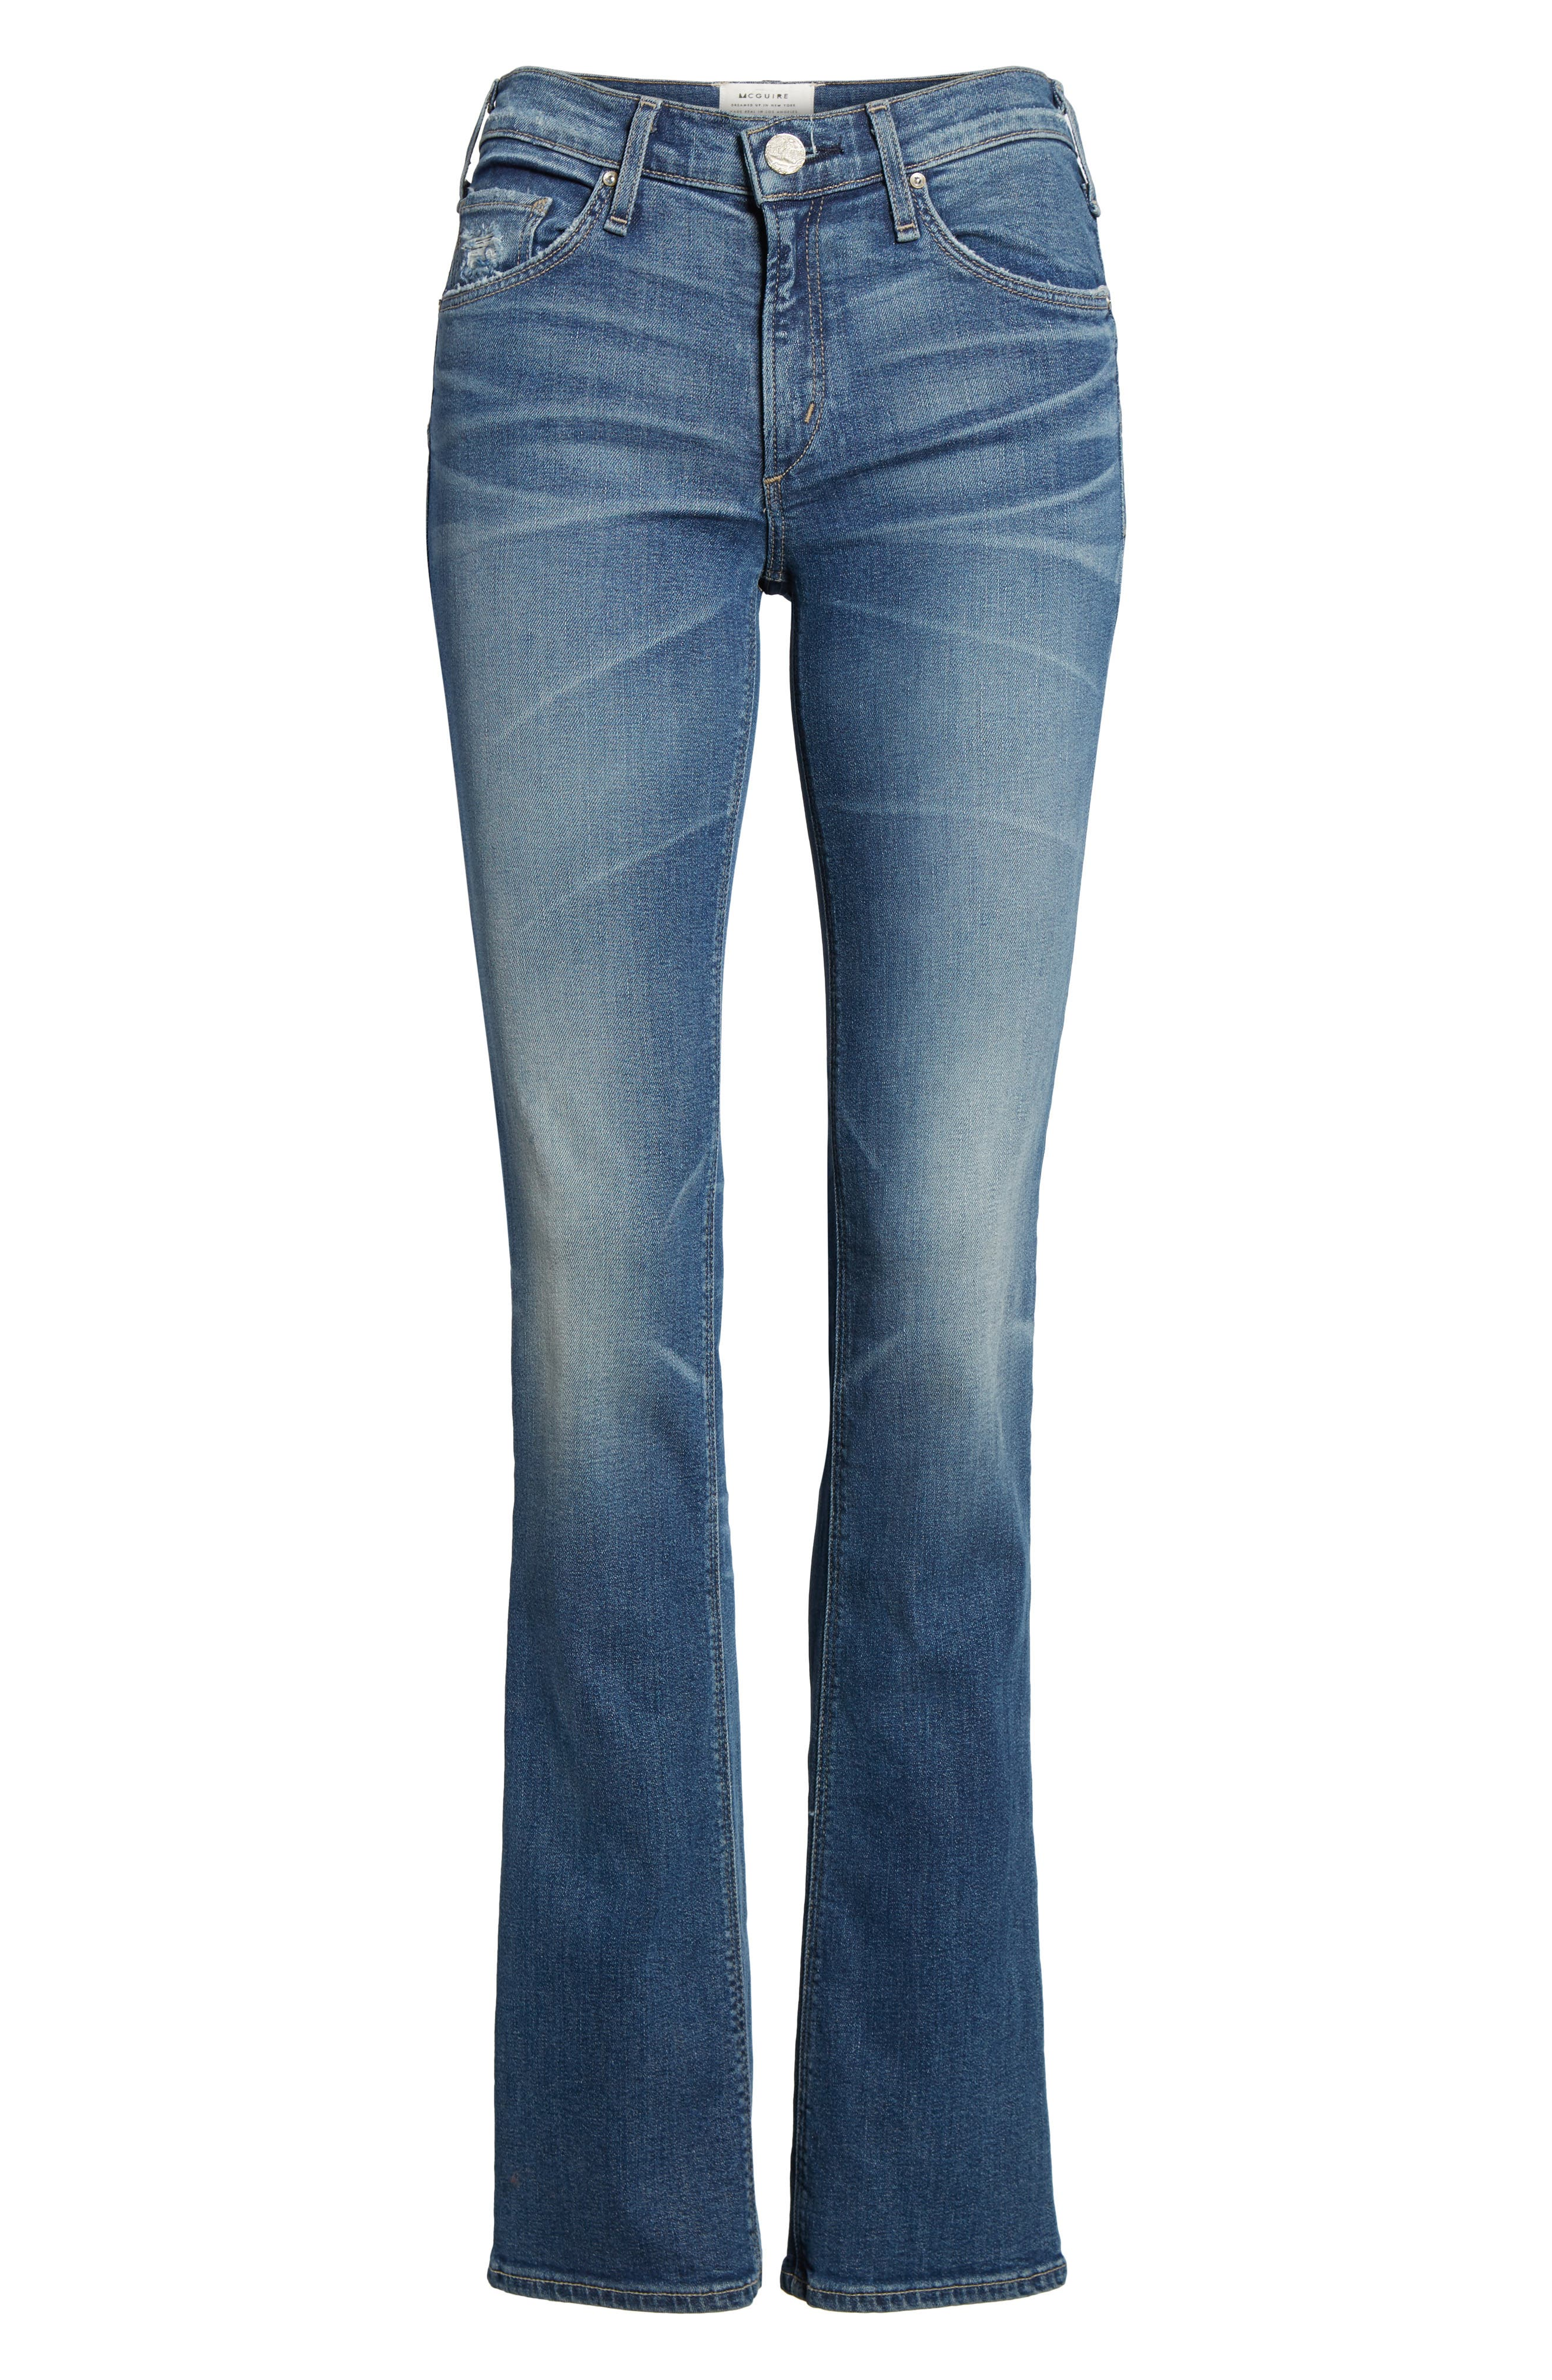 Gainsbourg High Waist Bootcut Jeans,                             Alternate thumbnail 7, color,                             Excuse Me Sir